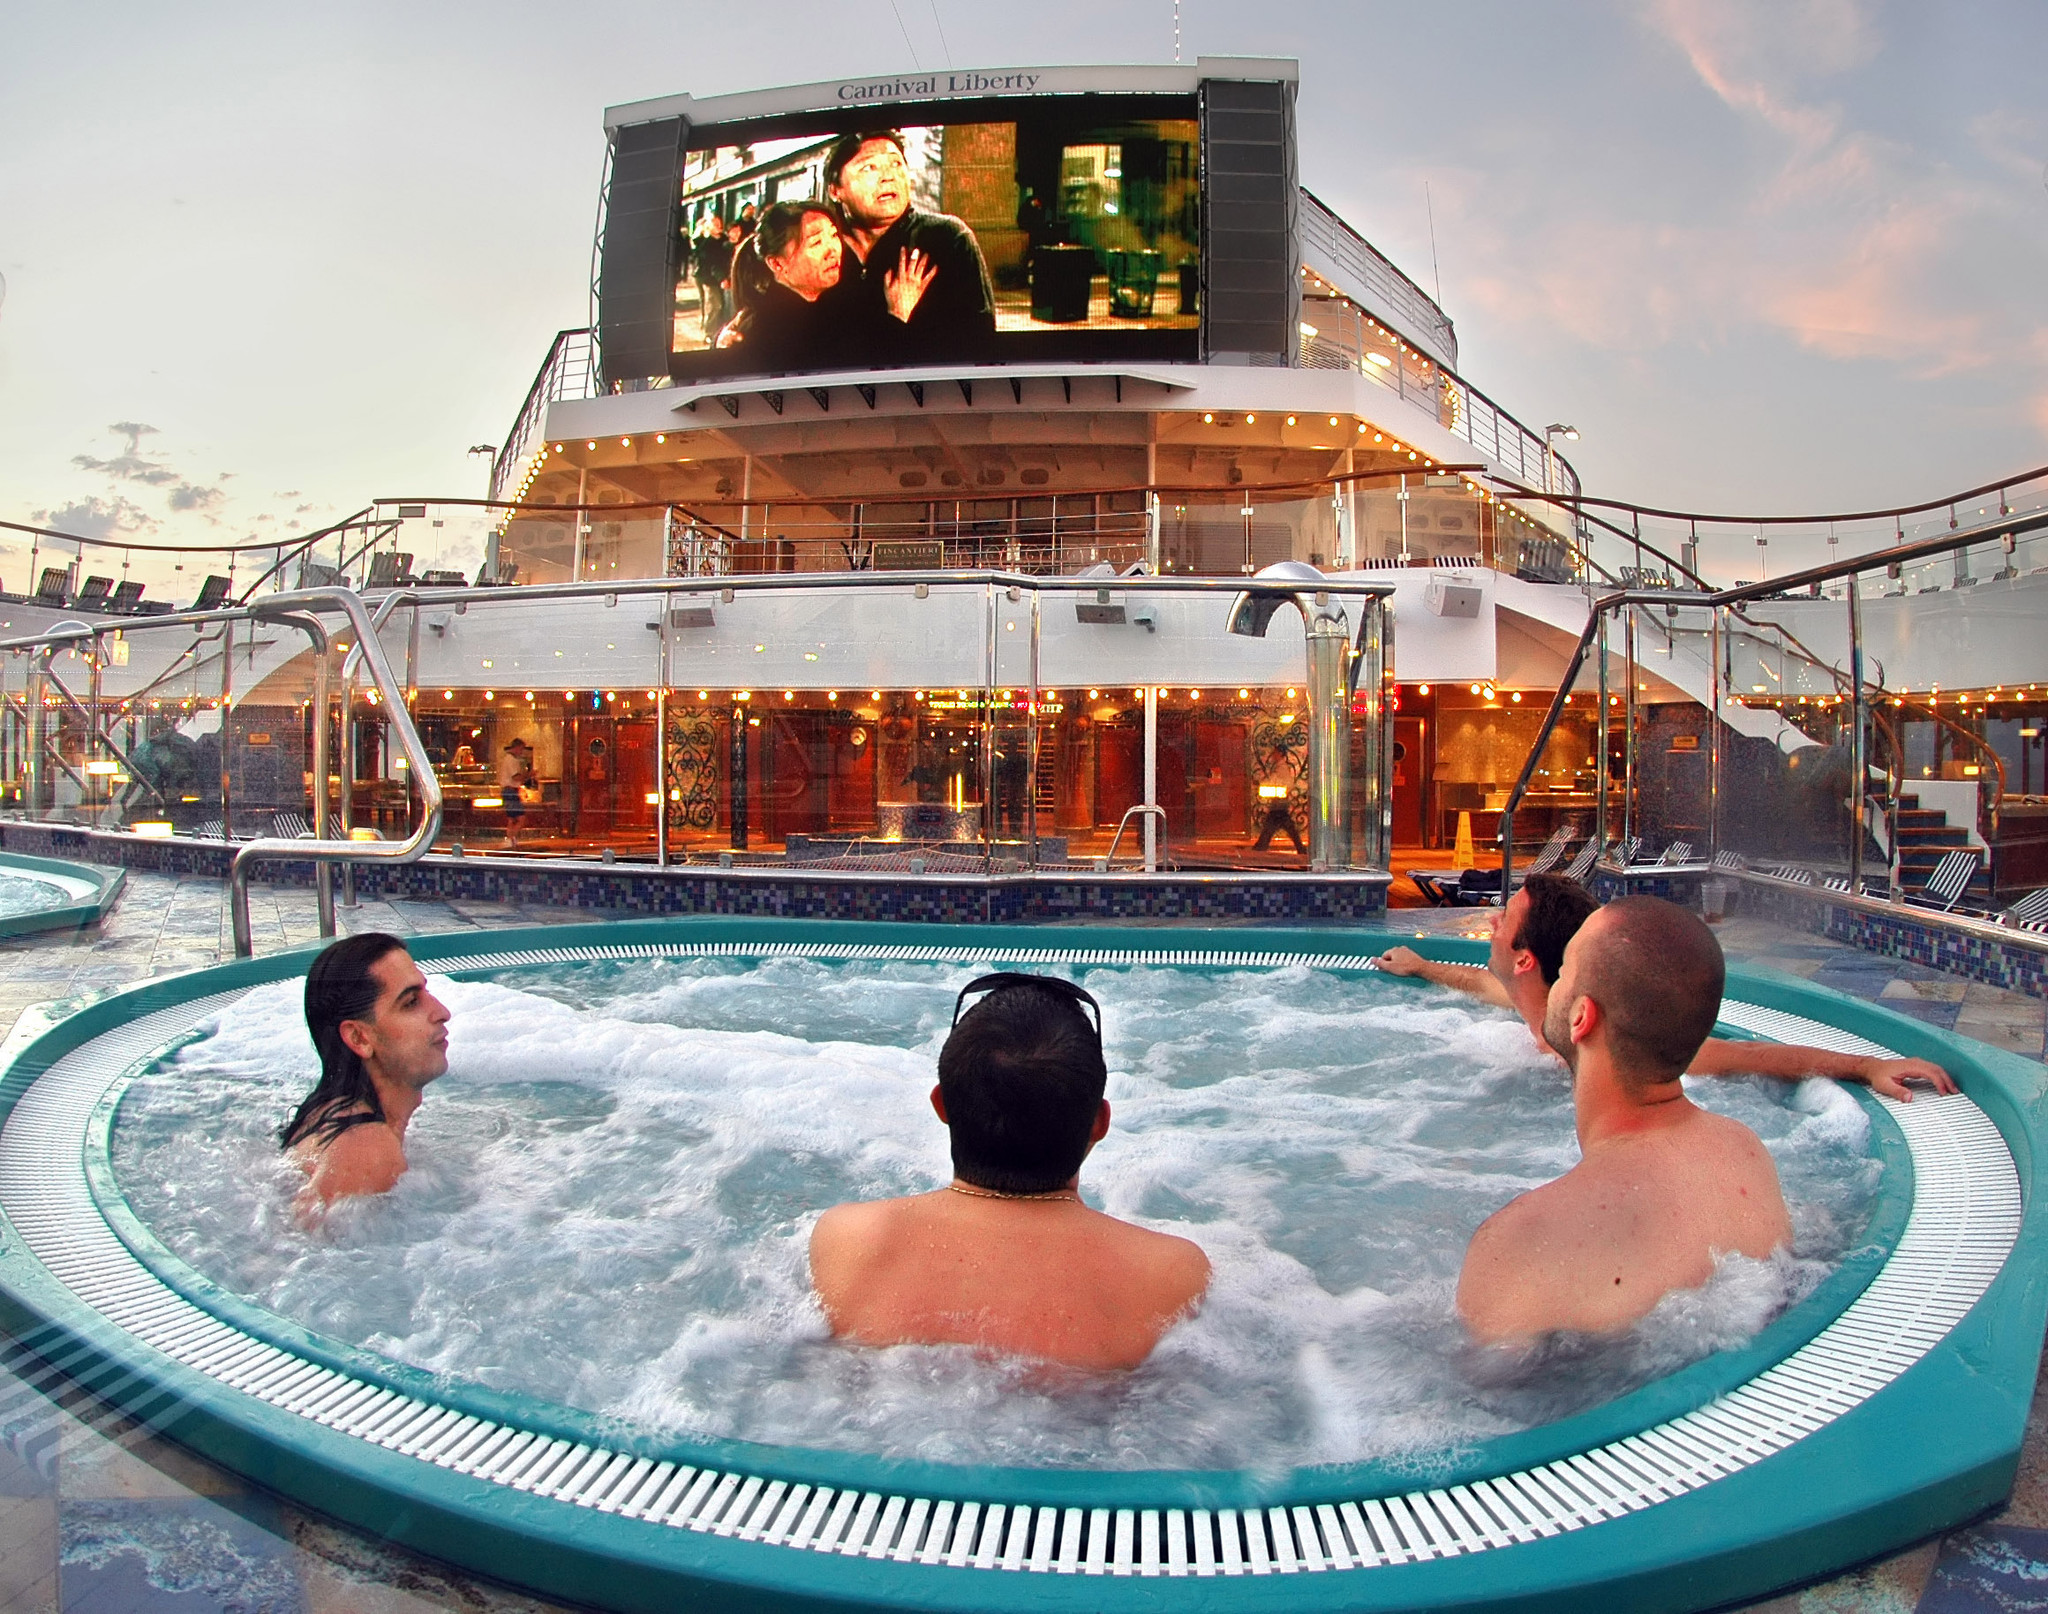 Cruise ship orgasm hot tub